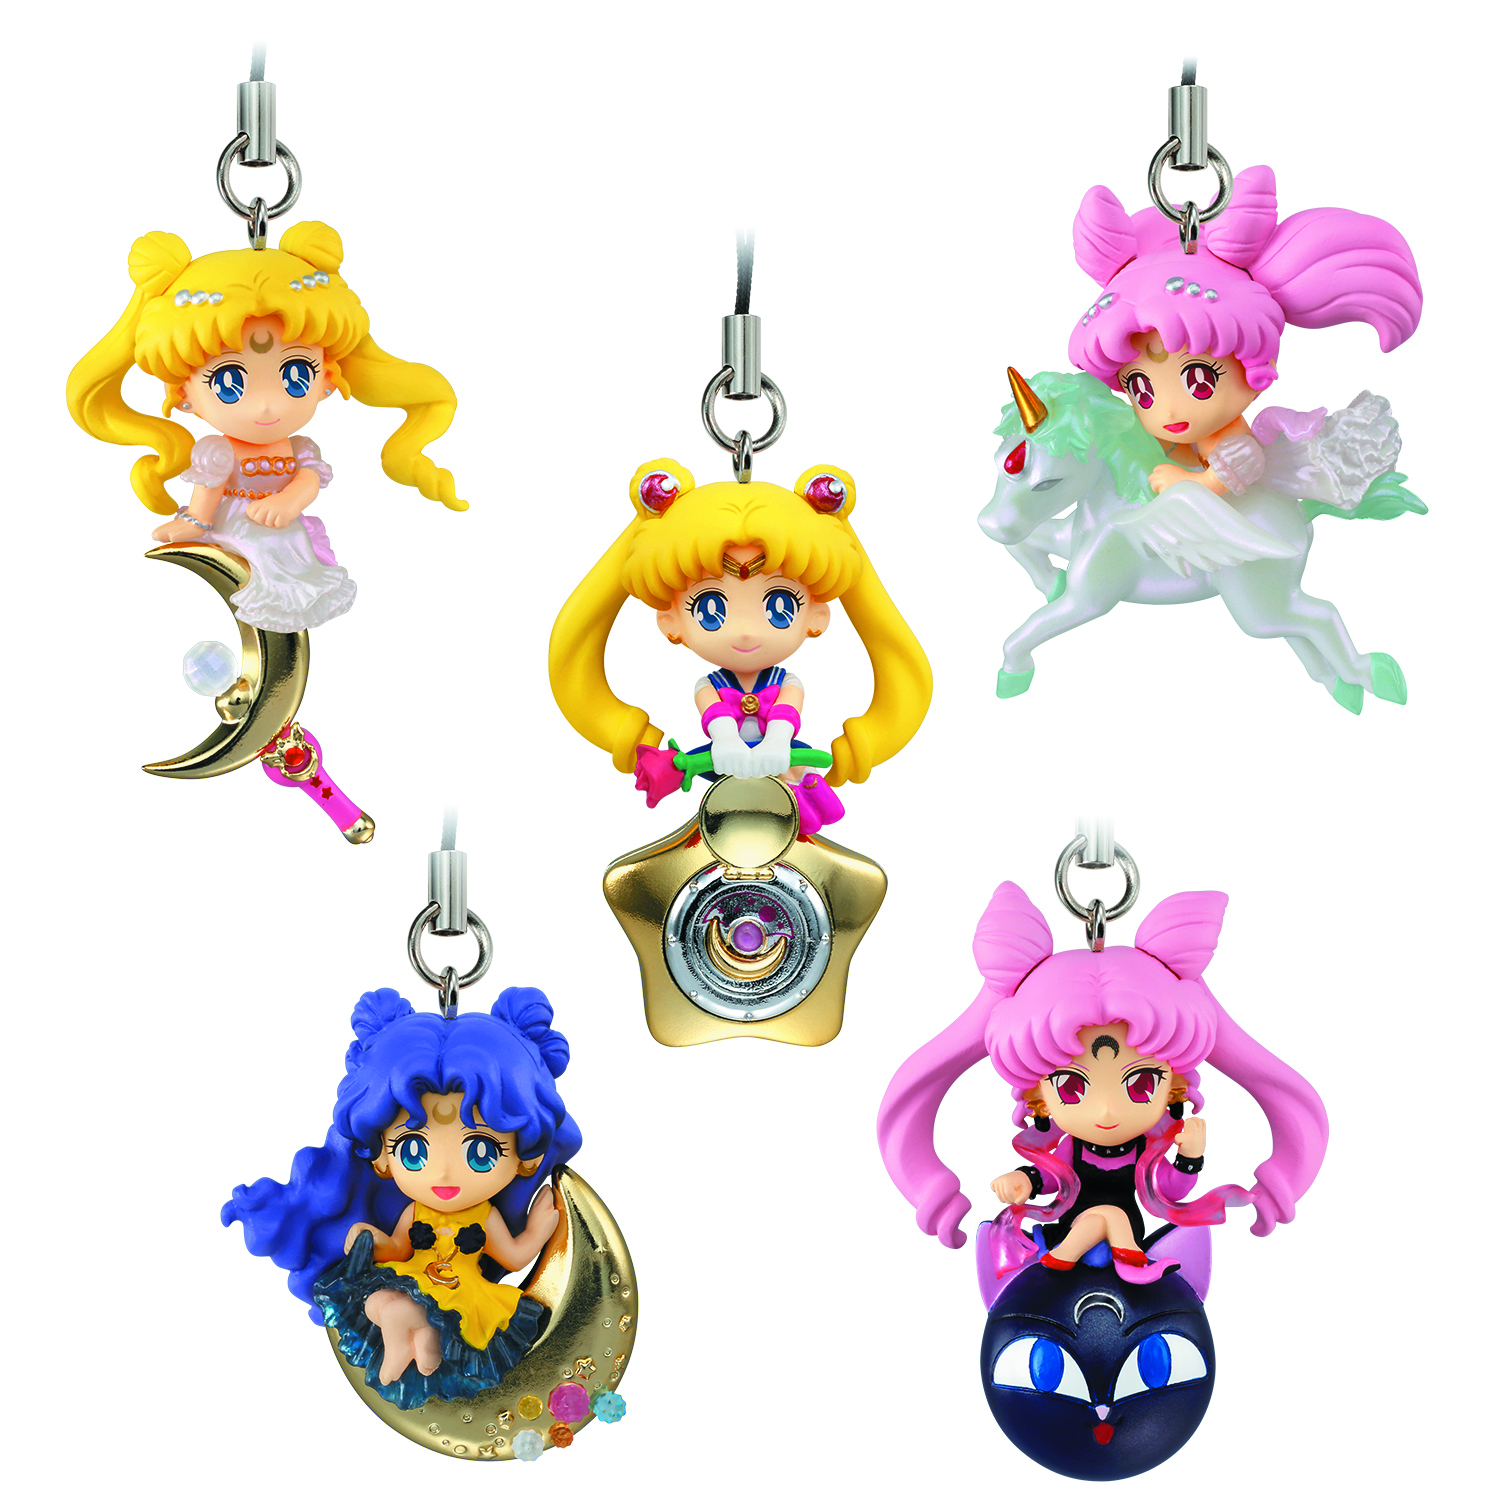 SAILOR MOON TWINKLE DOLLY VER 3 10PC DIS